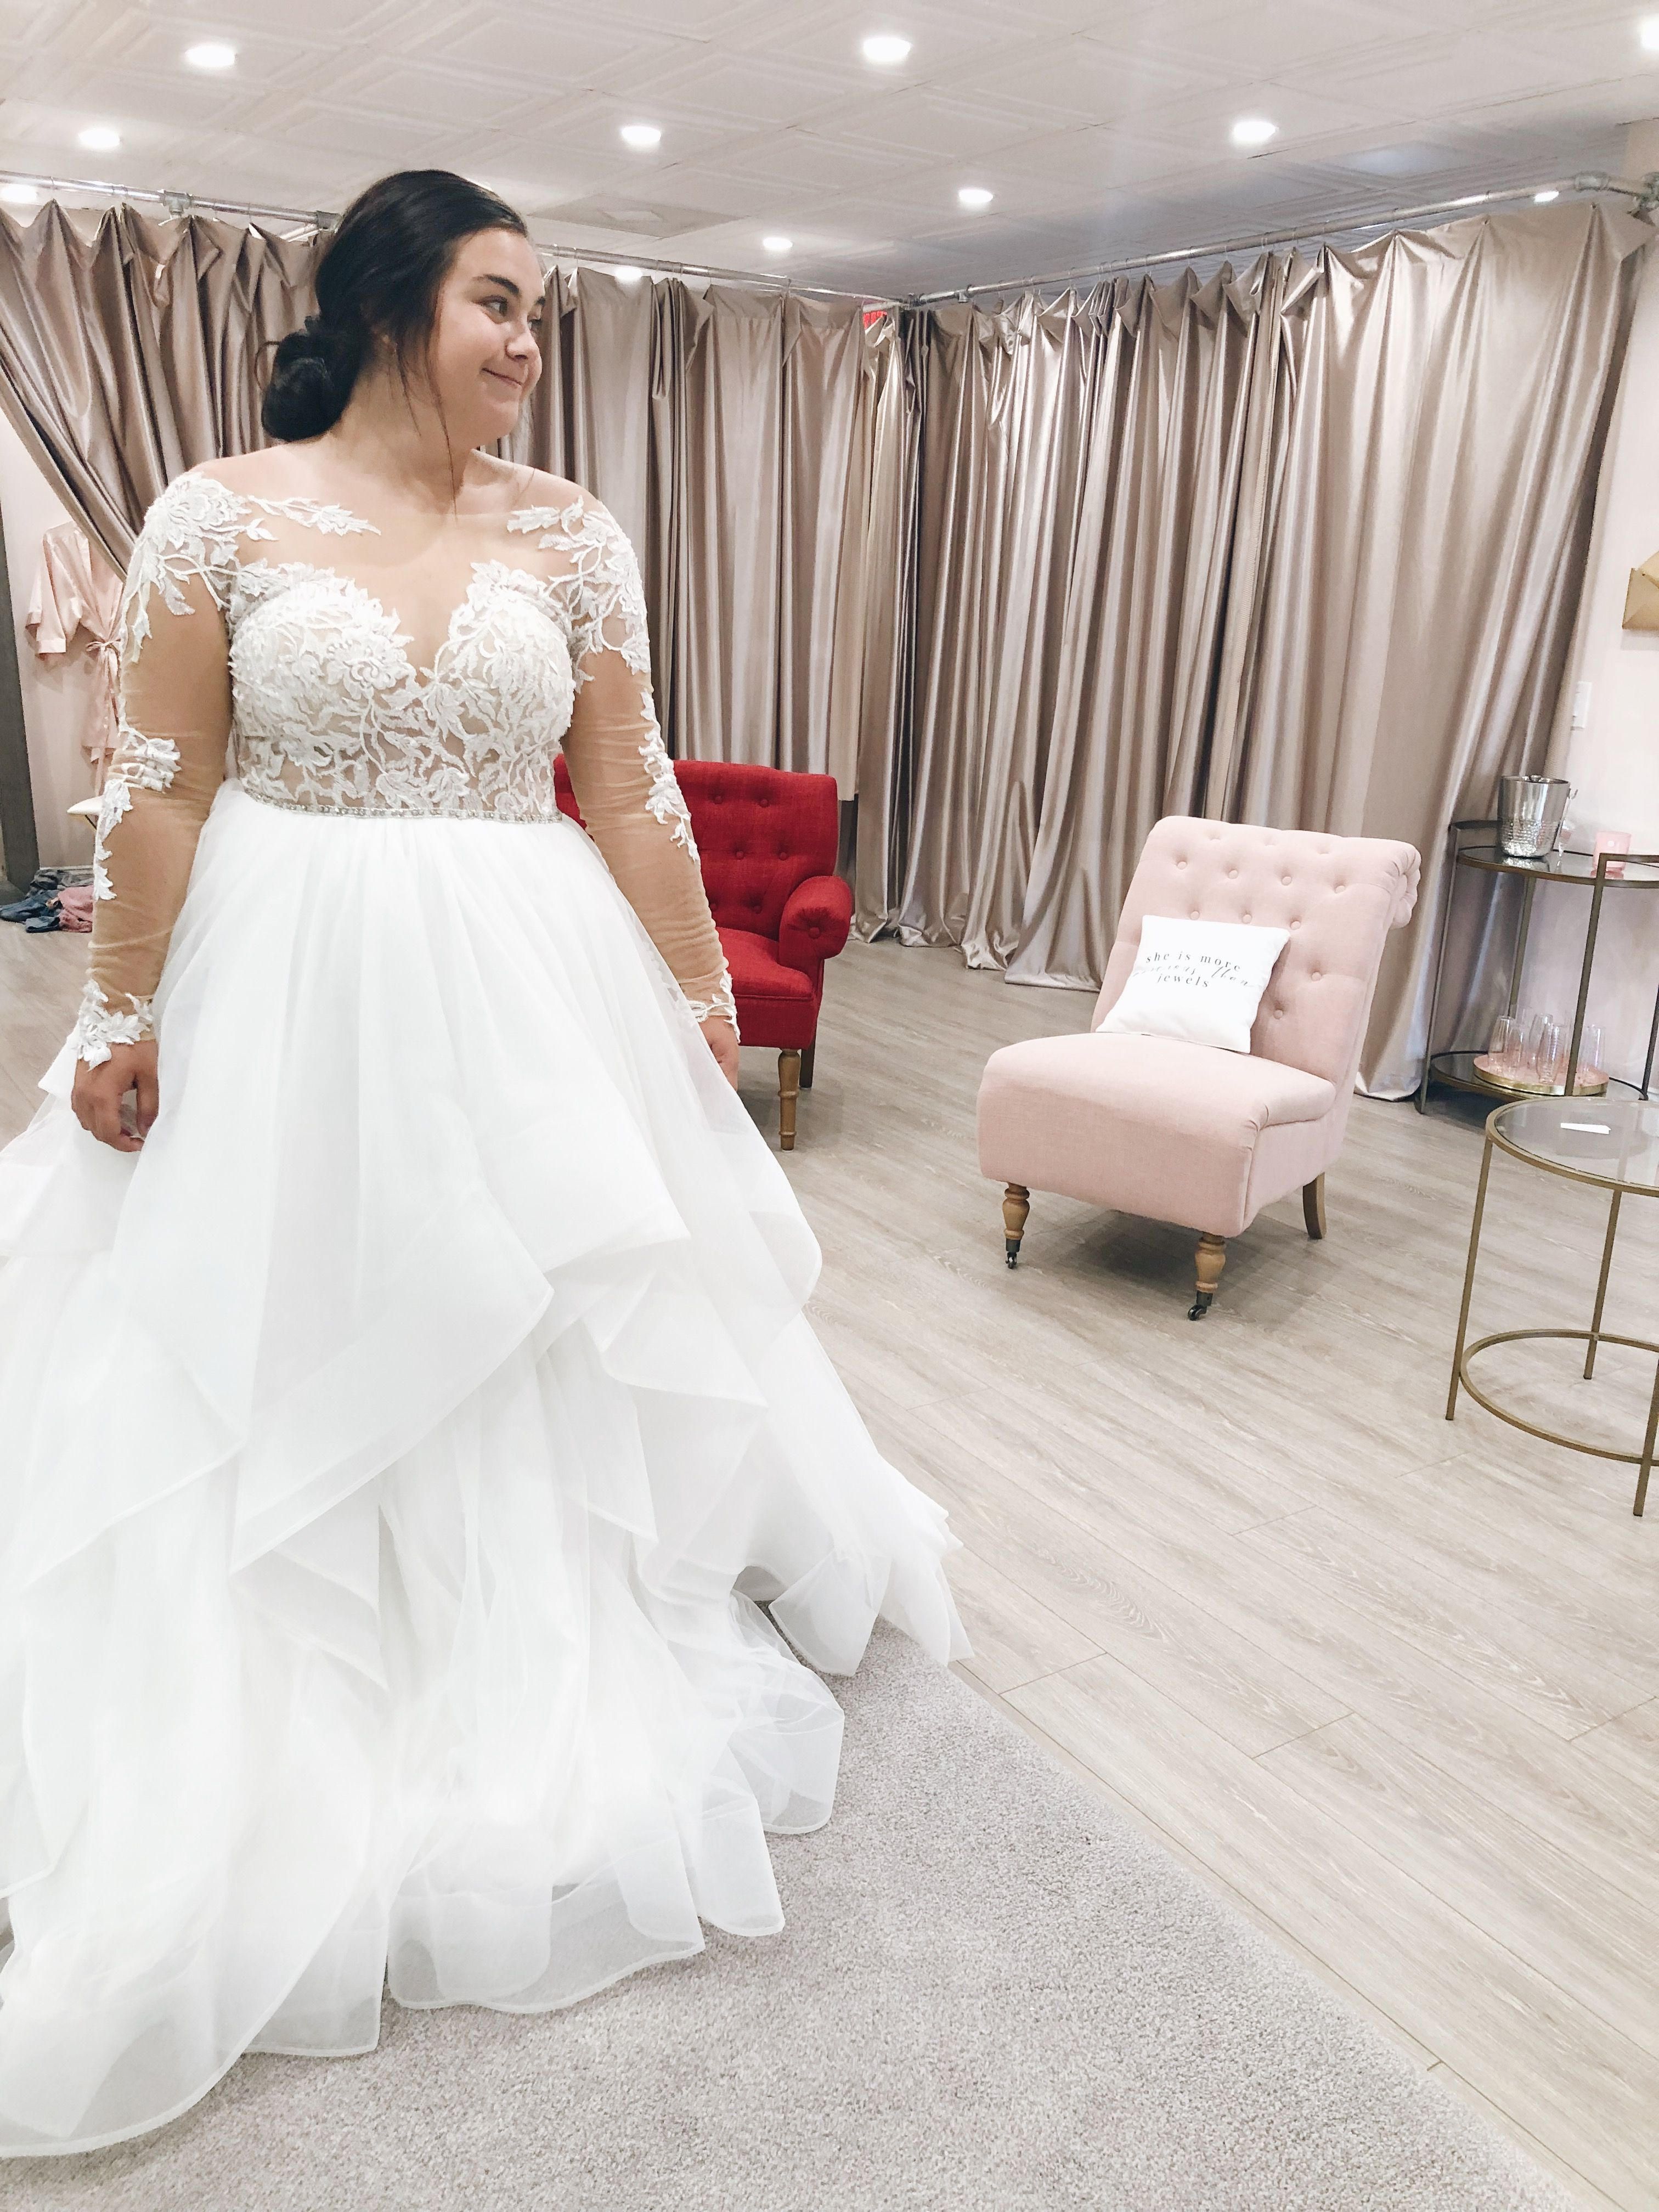 Long Sleeve Ball Gown Style Wedding Dress On The Luxurious Back Stage Of Beauty Within Bridal In Fer Dream Wedding Dresses Wedding Dress Styles Wedding Dresses [ 4032 x 3024 Pixel ]